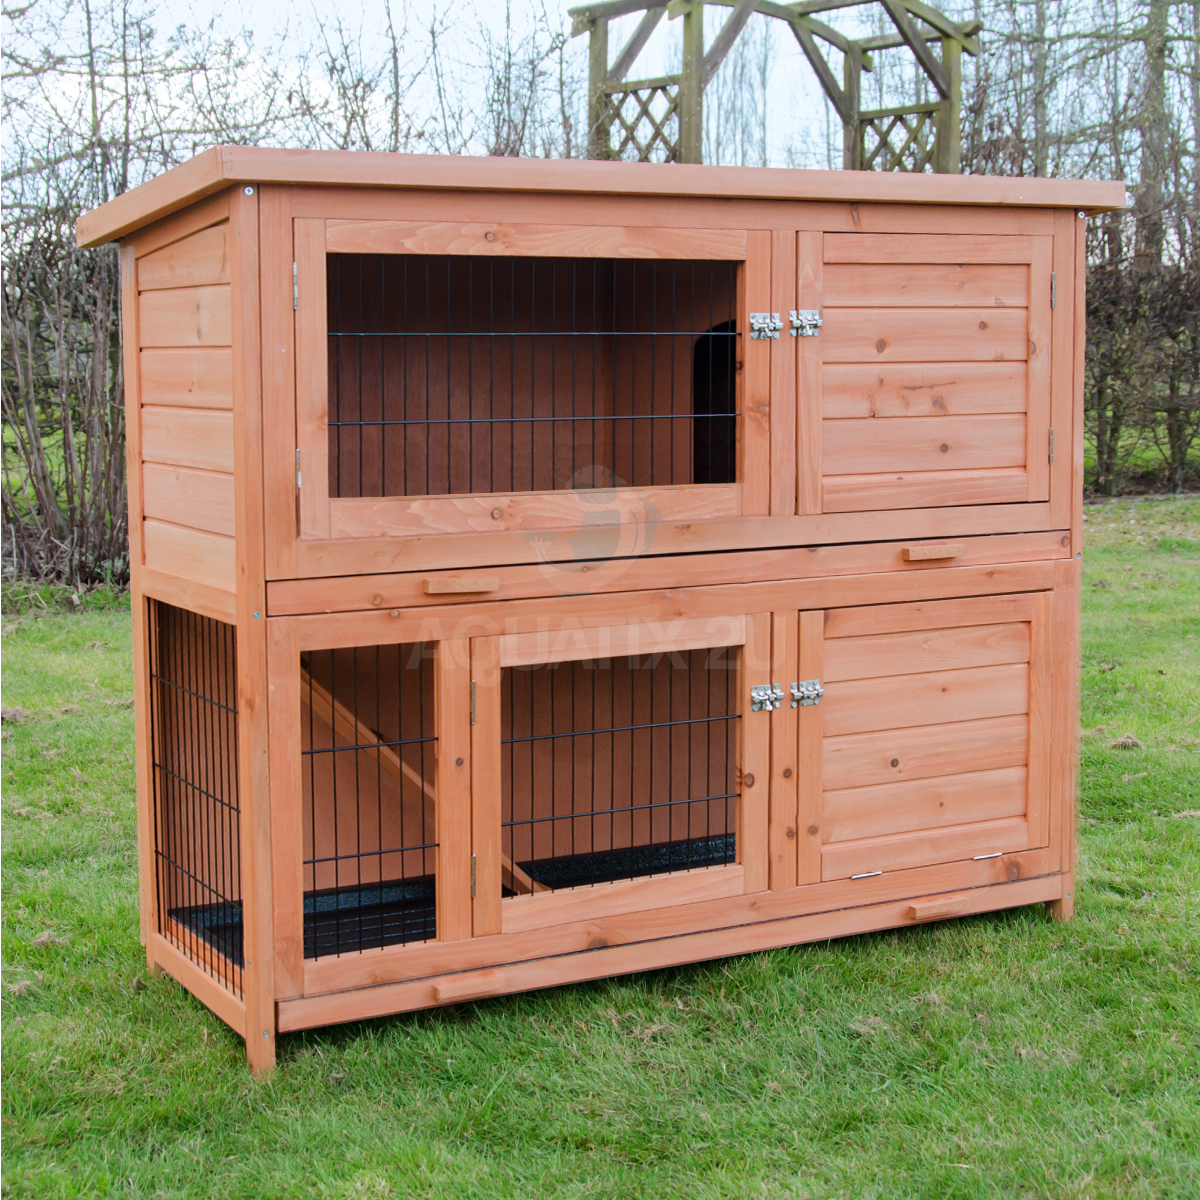 Milan large two tier rabbit hutch with enclosed run pisces for 2 rabbit hutch